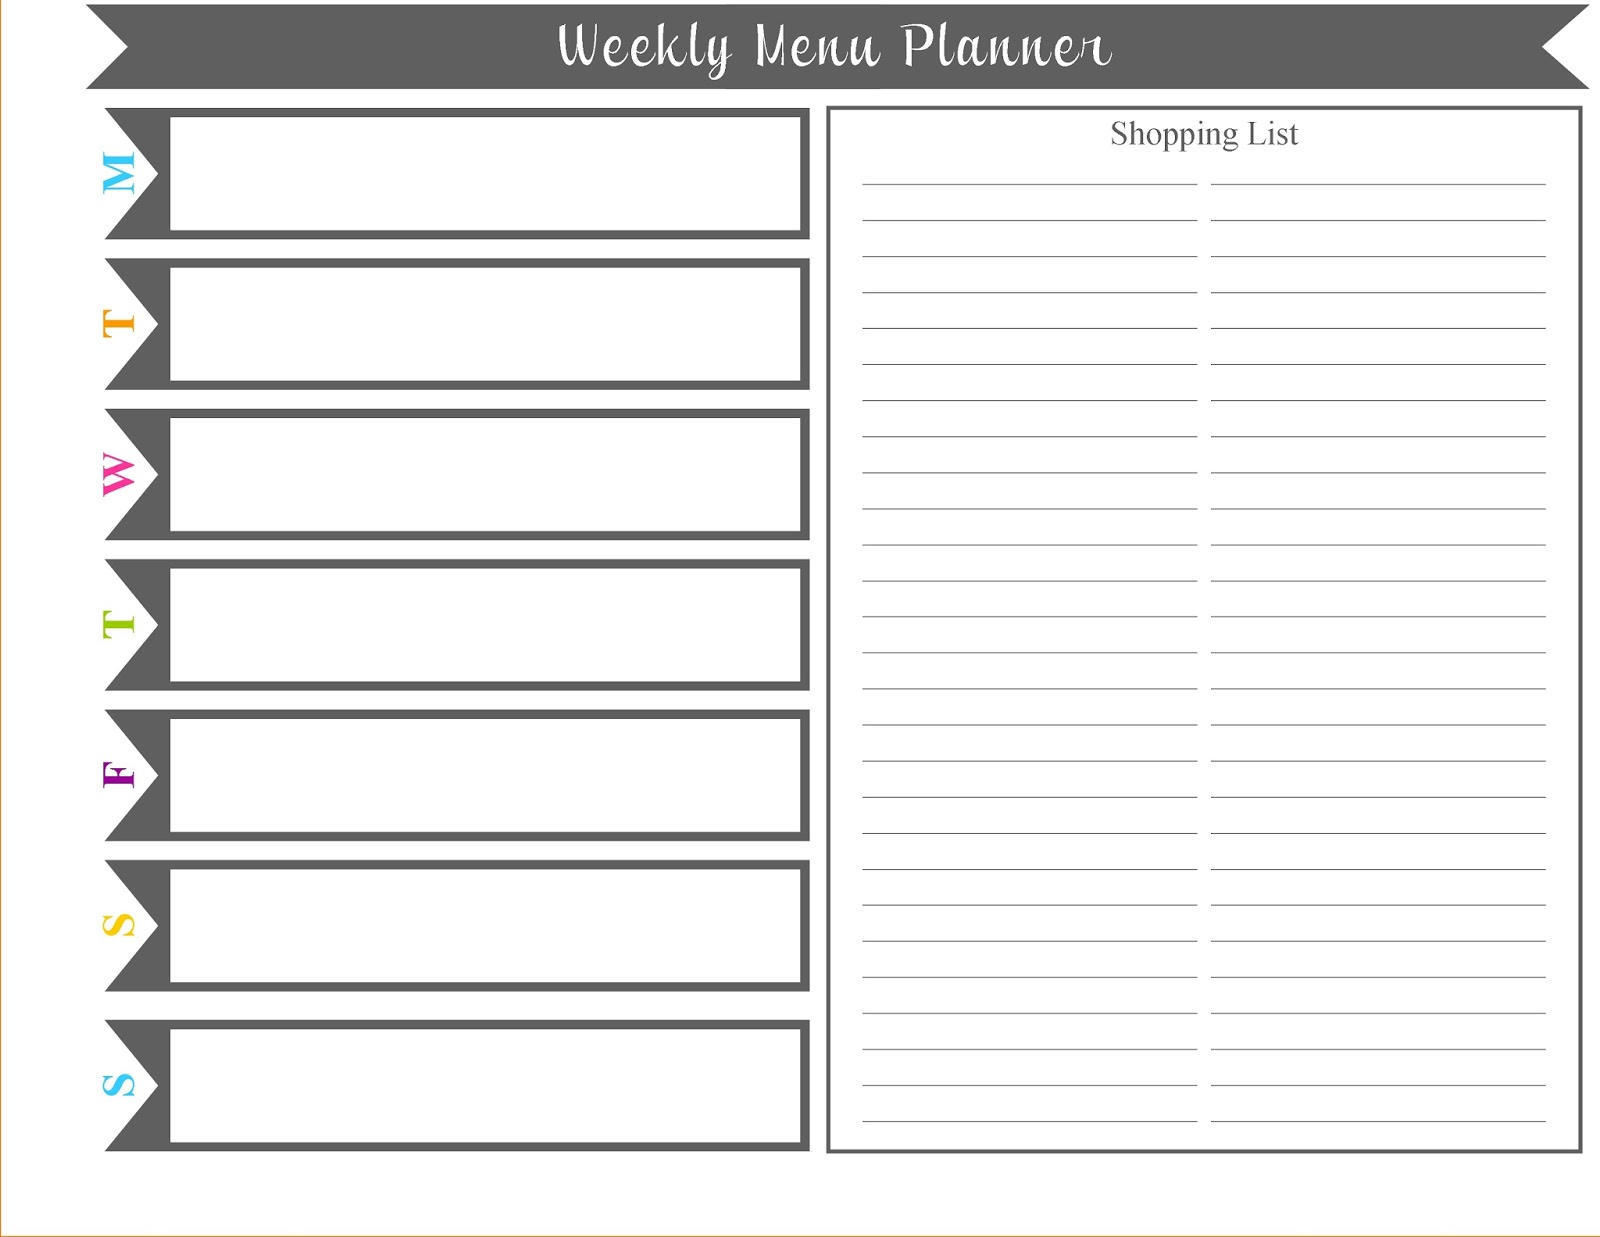 free weekly planner template blank weekly planner printable download weekly schedule planner weekly